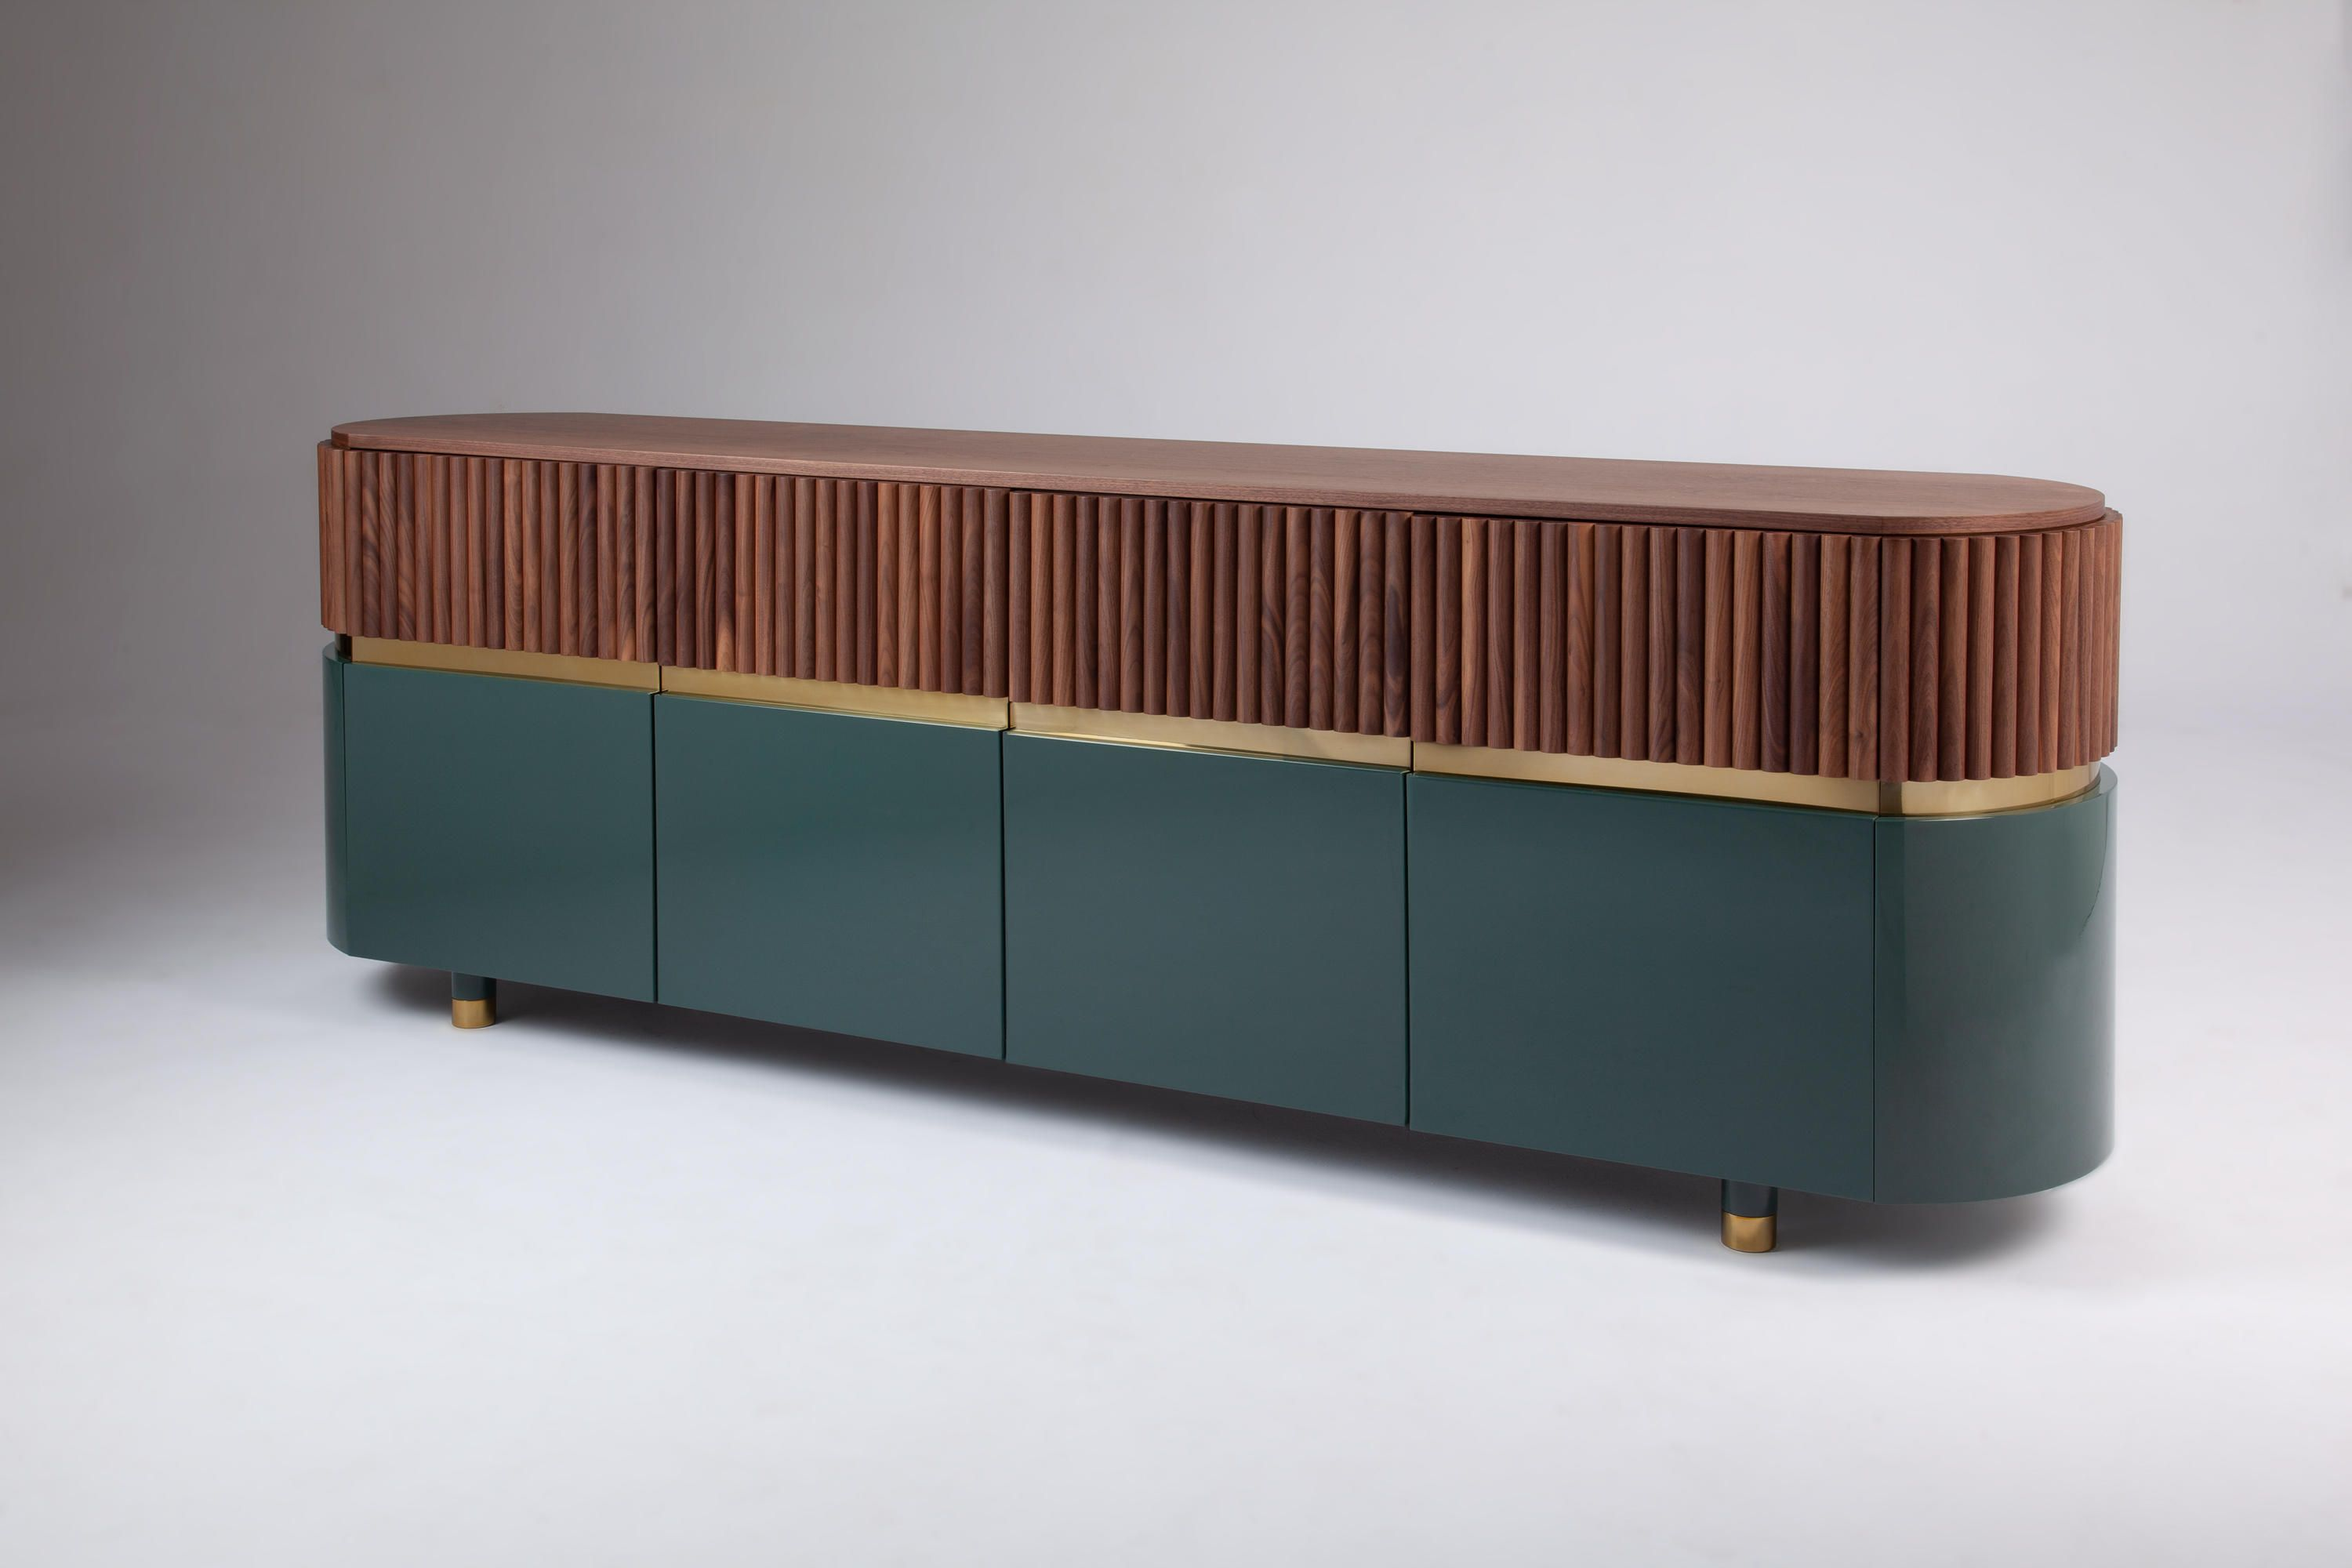 Berlin Designer Sideboards From Dooq Architonic